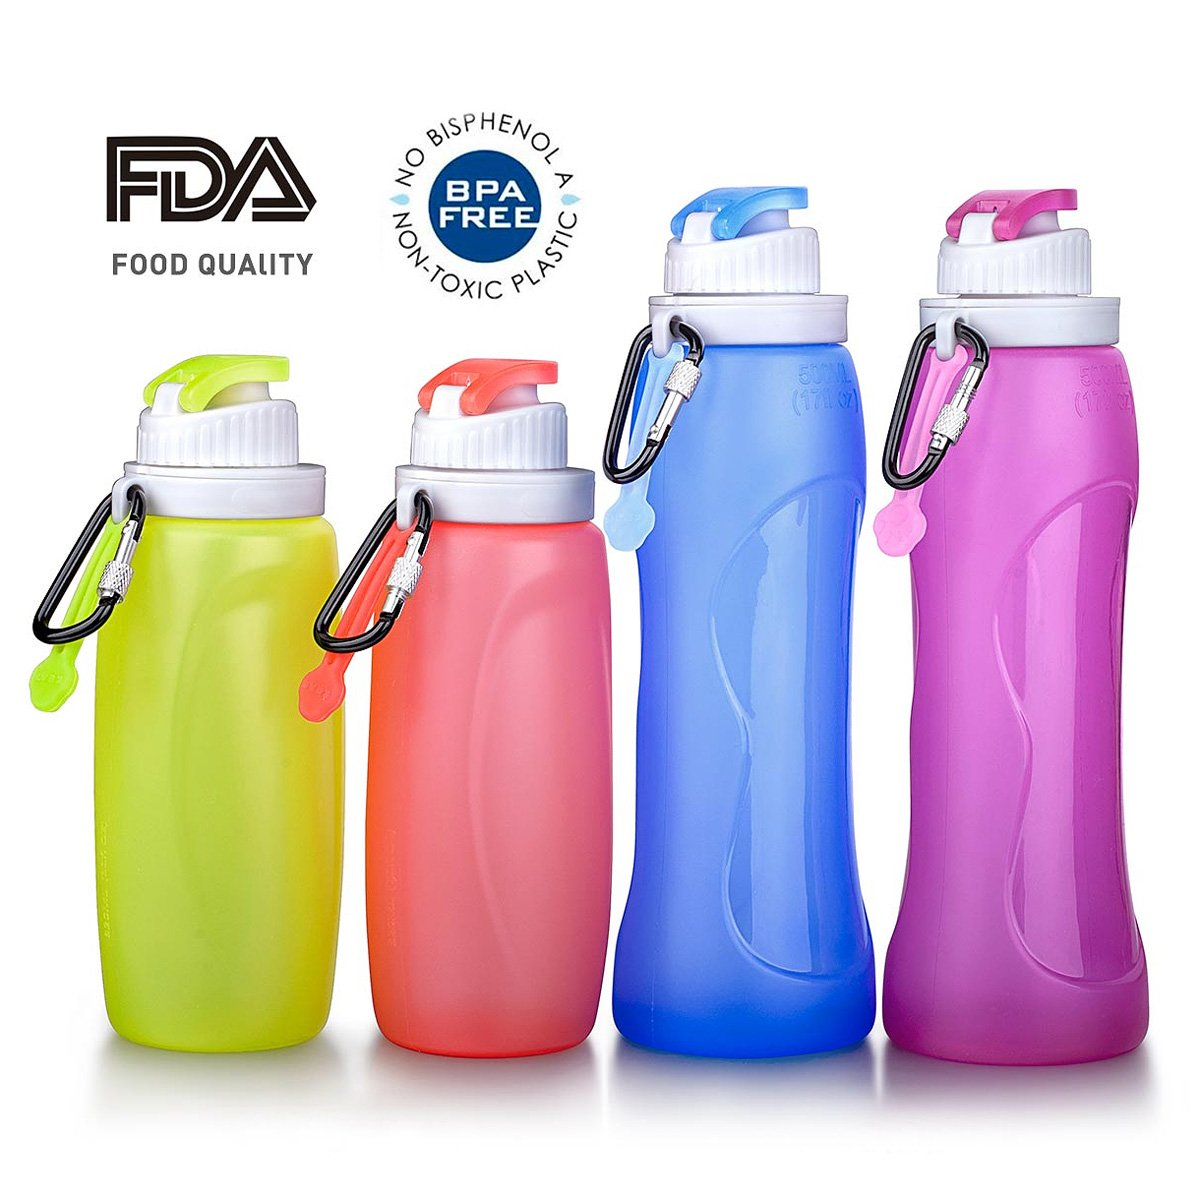 Mylivell Collapsible Water Bottle Silicone Outdoor Water Canteen BPA Free,FDA Approved Set of 4 Pack Family Set Parents And Children For Travel Trip Camping Cycling Fishing Climbing Sports